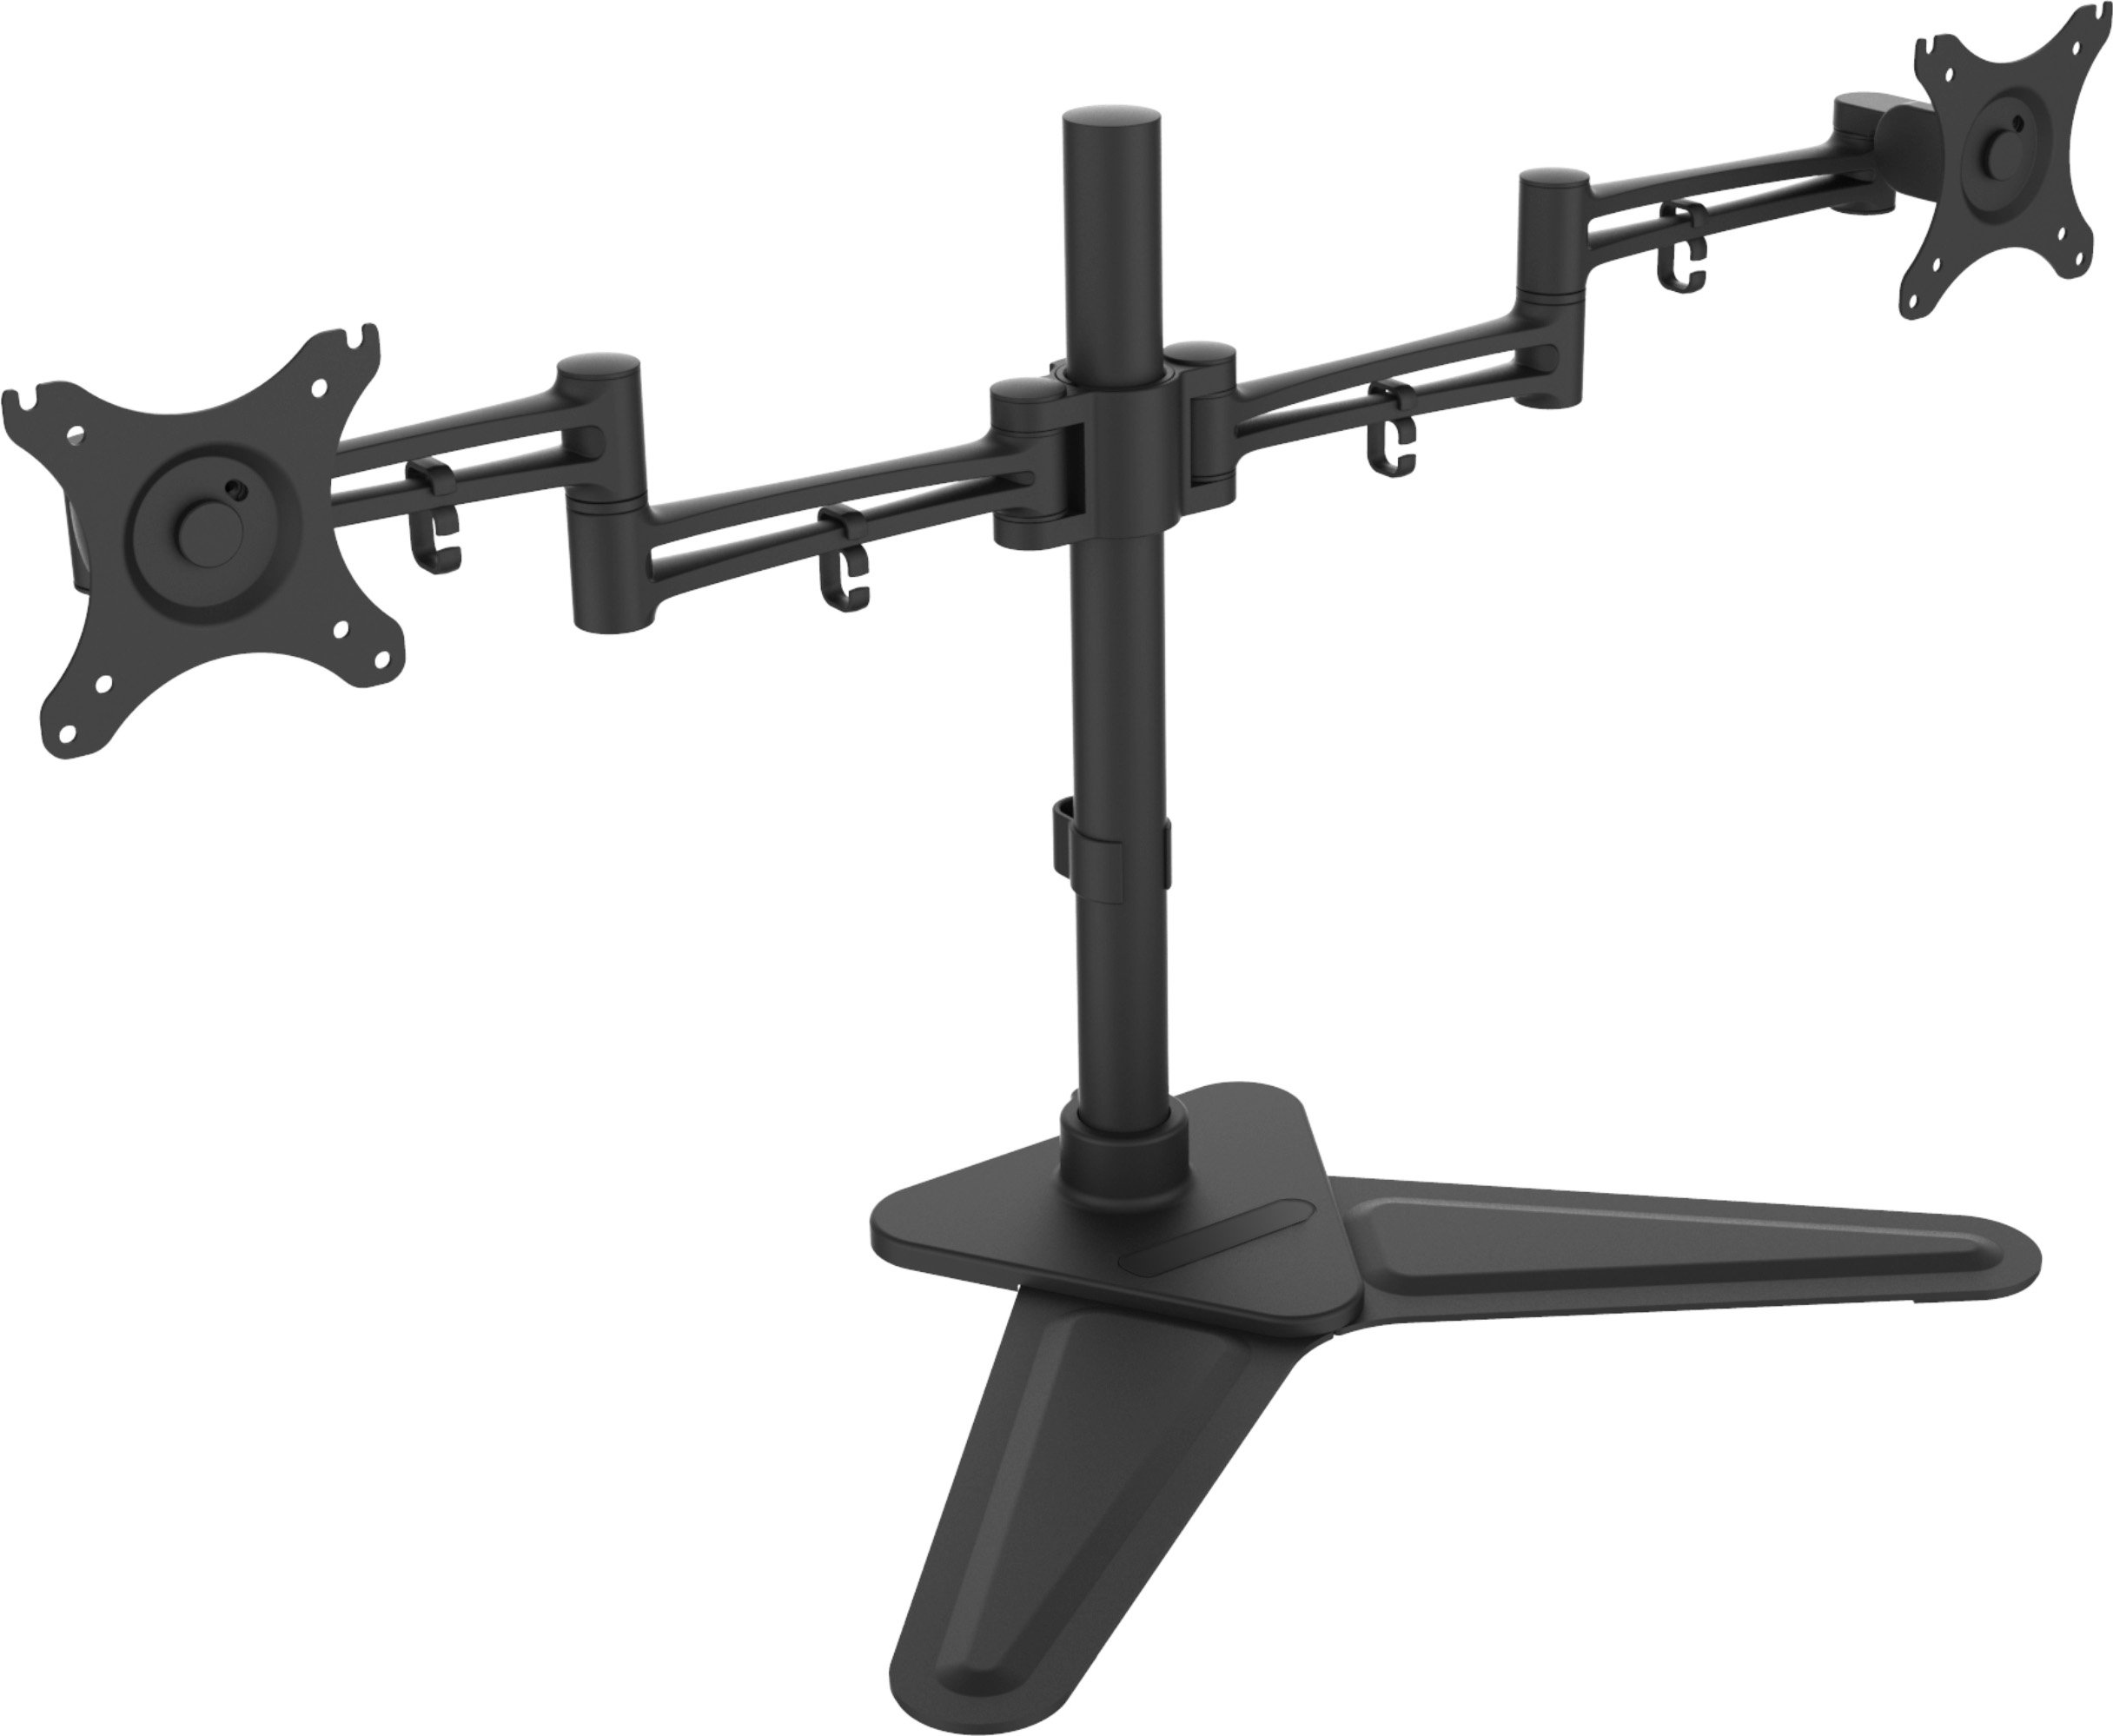 XtremPro Dual Monitor Mount for 2 LCD Screen Desk for 10'' - 30'' w/ Cable Management, Height Adjustable, Tilt -85° ~ +15°, ±180° Rotation, VESA 75x75, 100x100, 44Lbs Capacity - Black (41107)